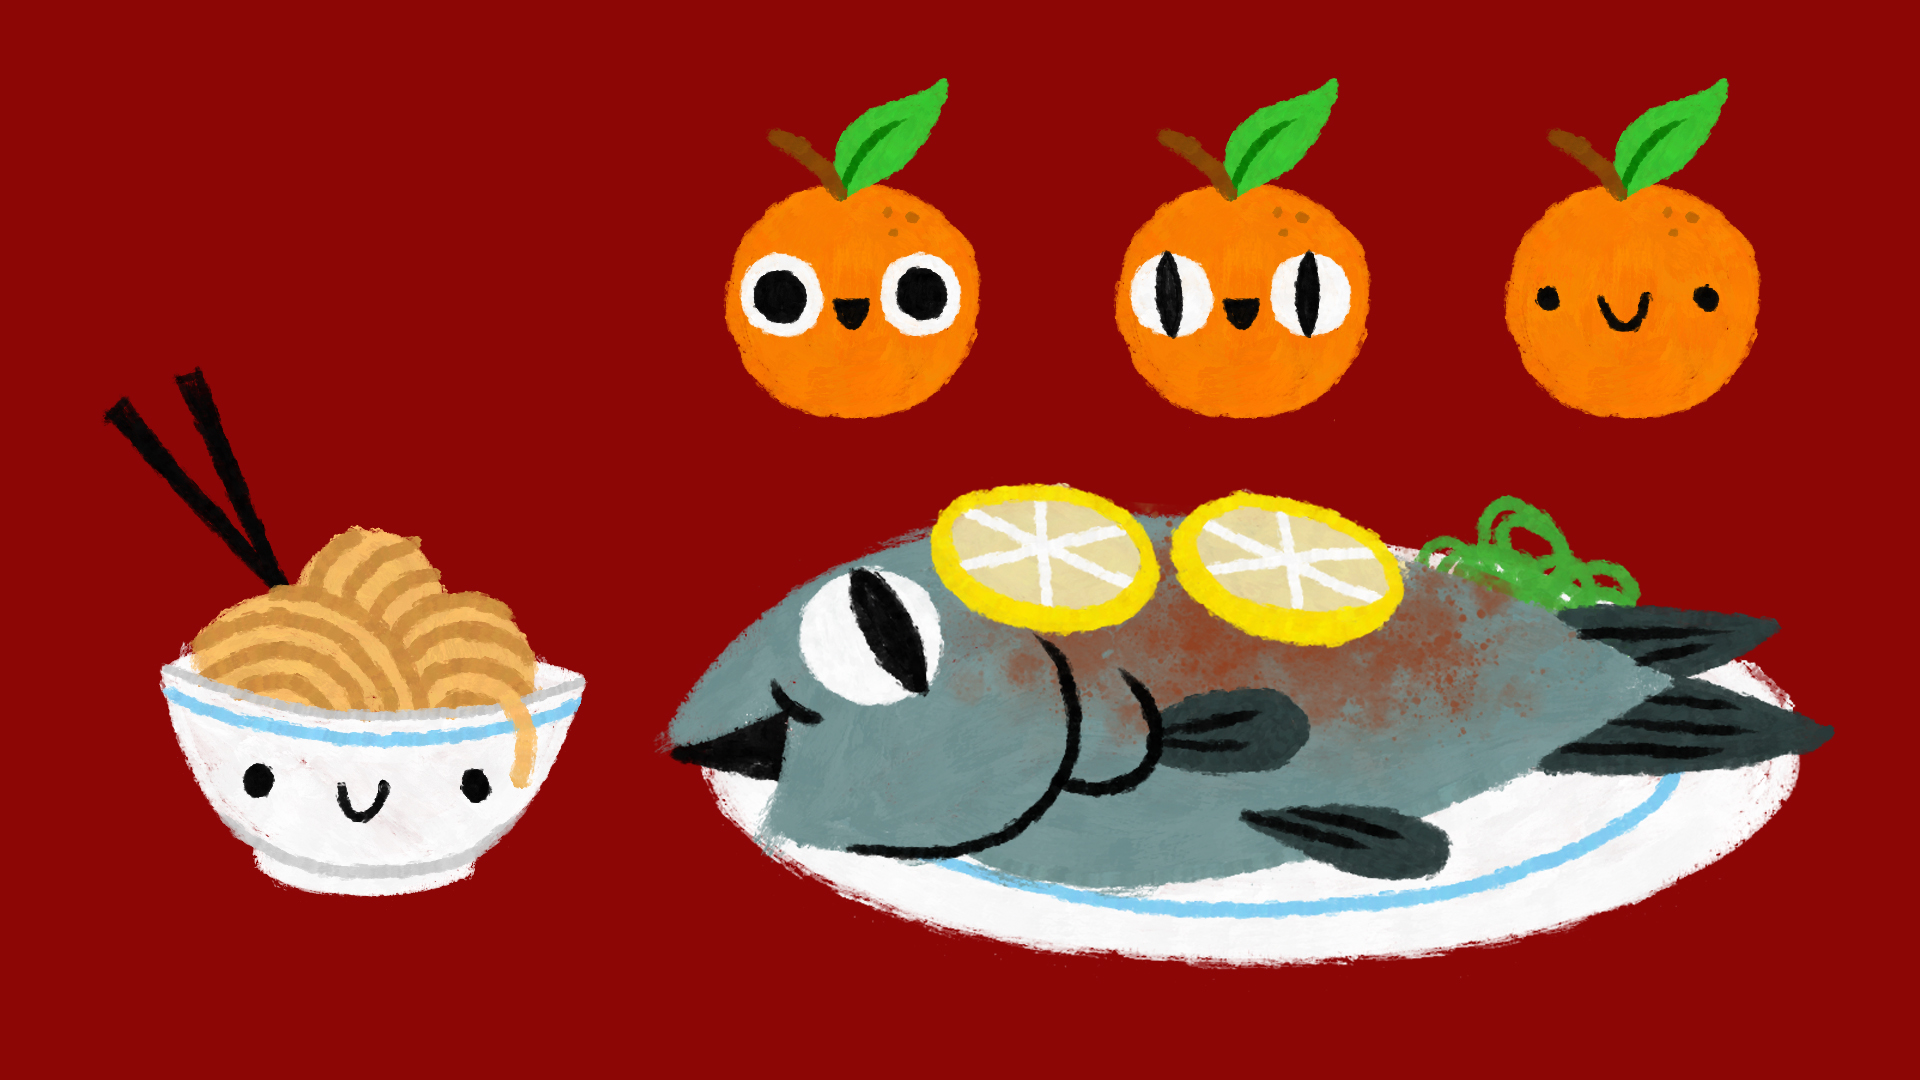 SS_CharacterDesign_fish_noodles_oranges_v01.jpg